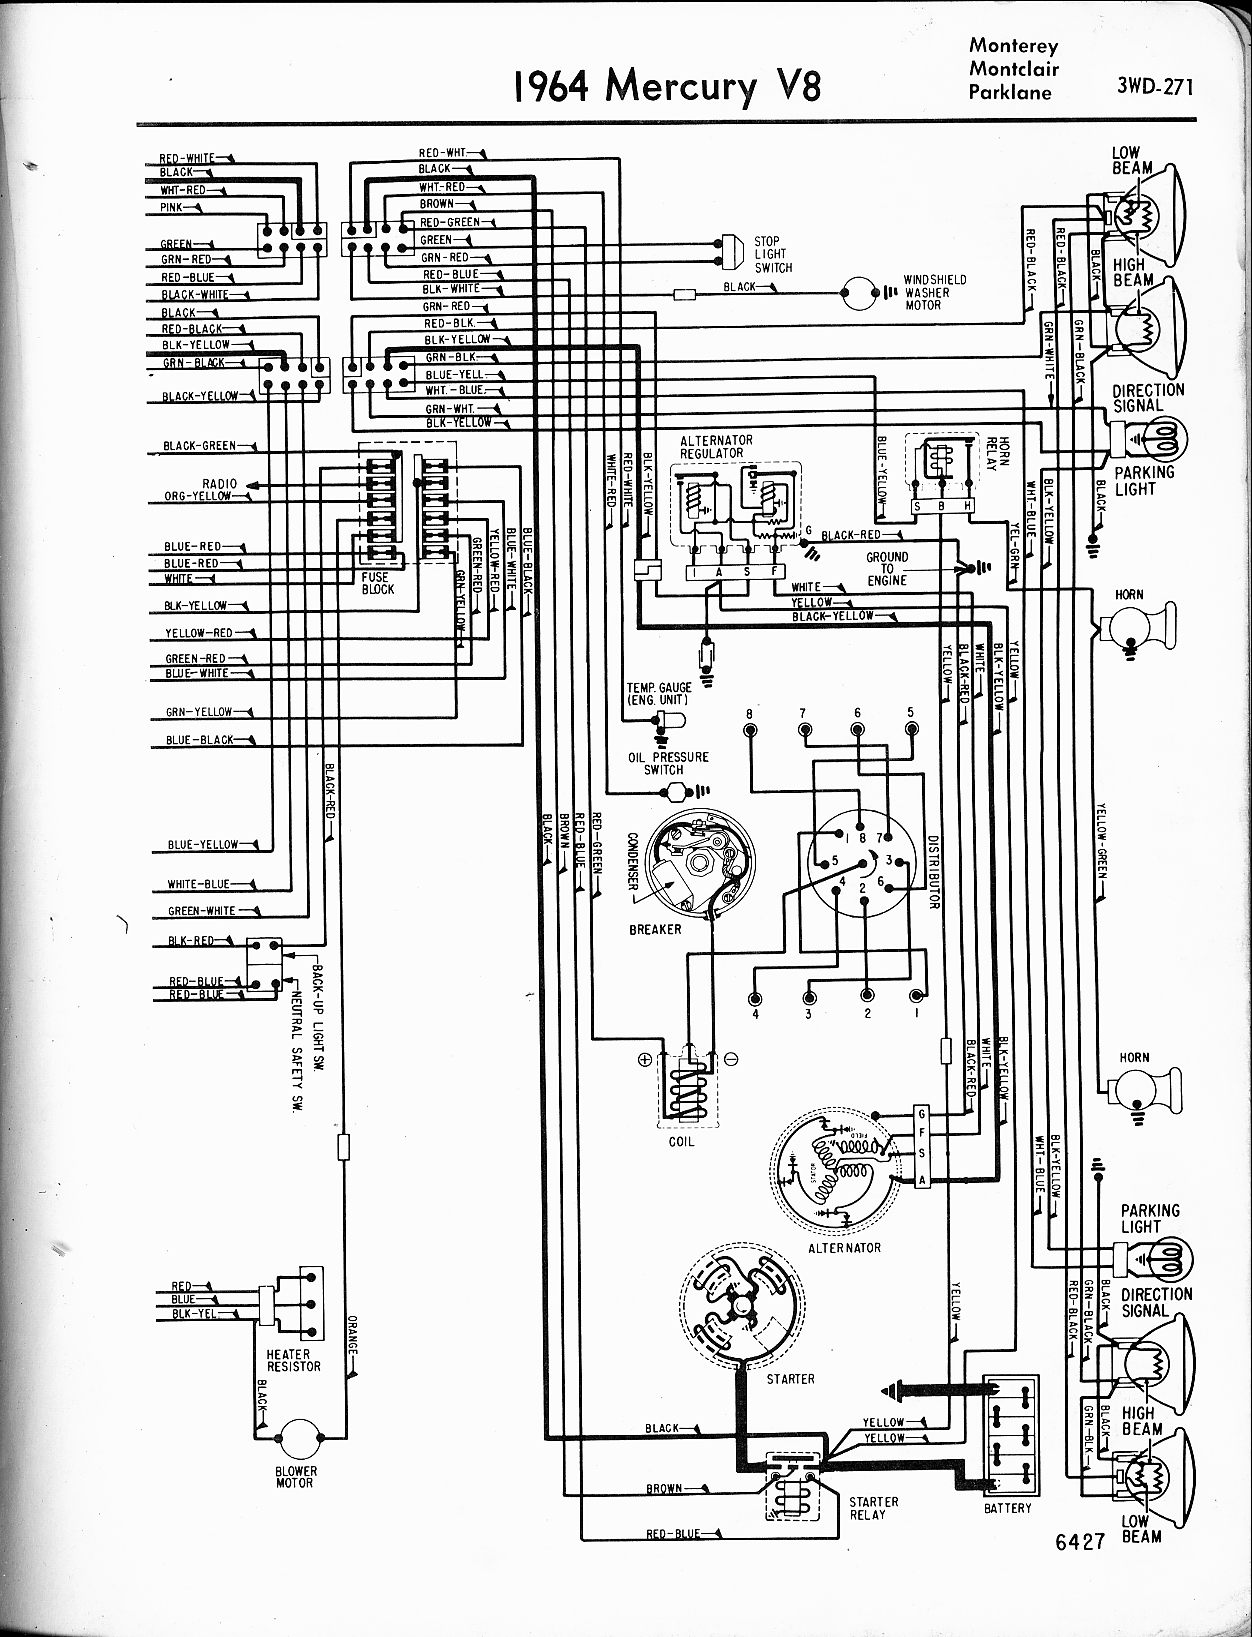 Turn Signal Wiring Diagram 1950 Merc Libraries Ford 1949 Mercury Third Levelmercury Diagrams The Old Car Manual Project